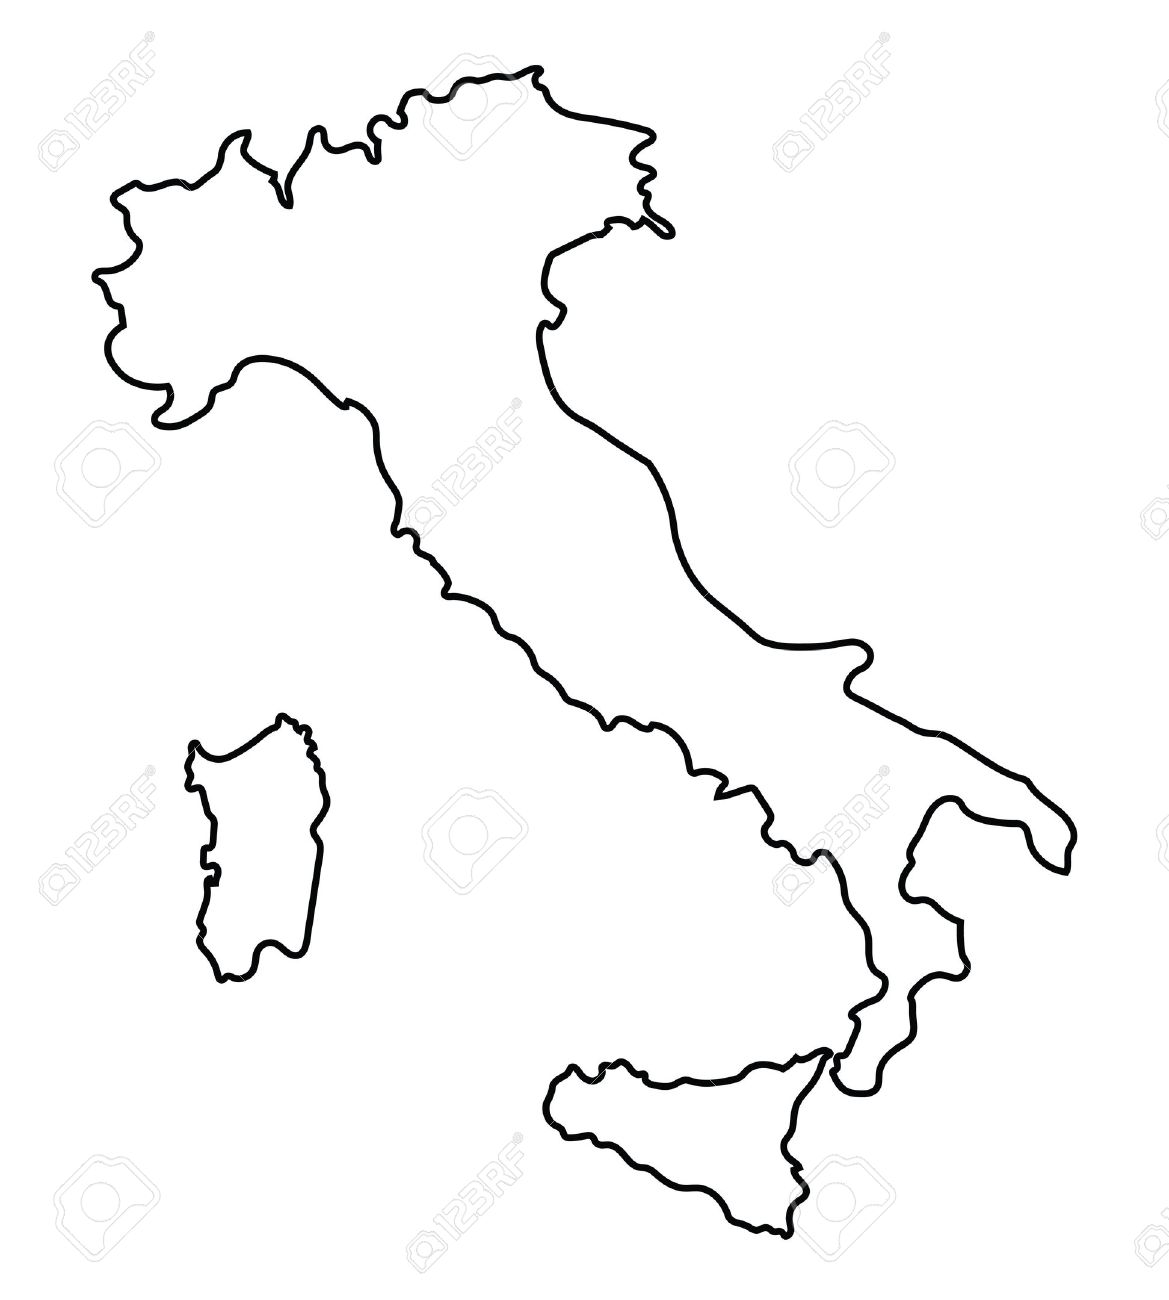 black abstract outline of map of italy royalty free cliparts